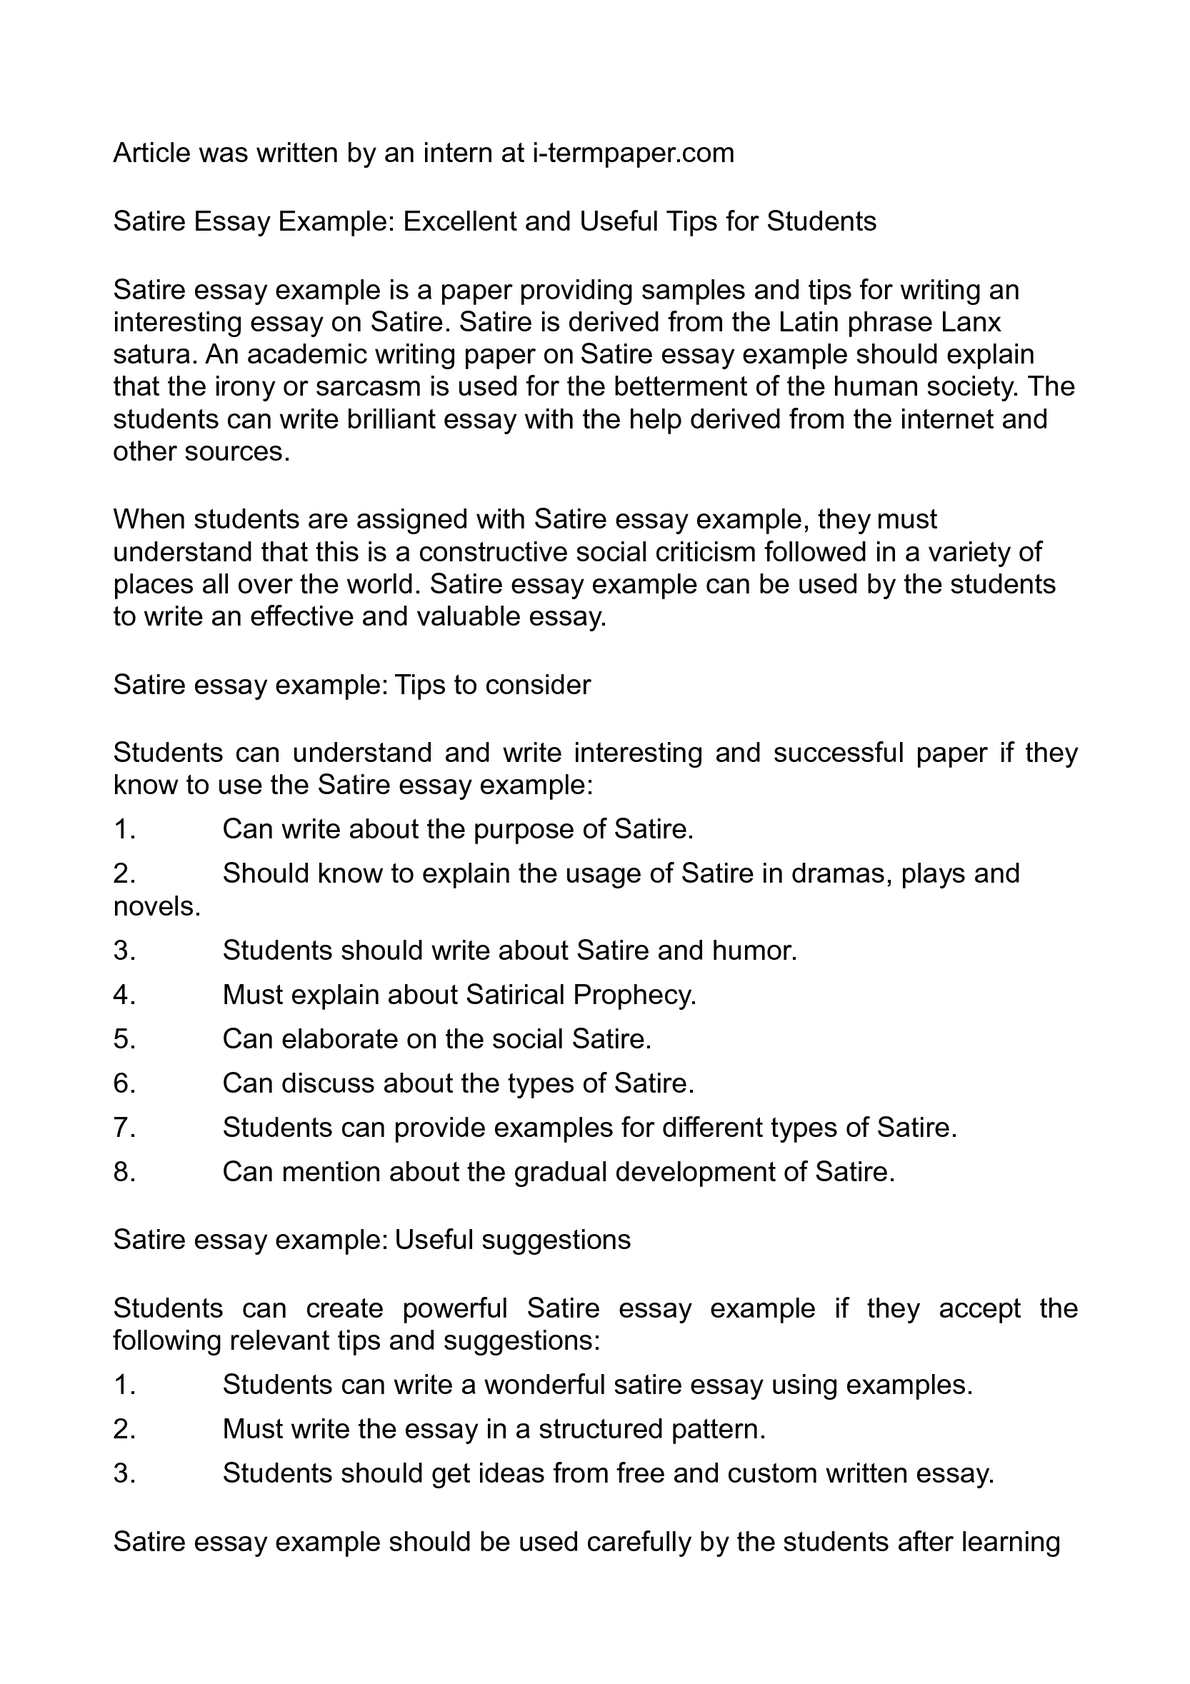 Essay on satire